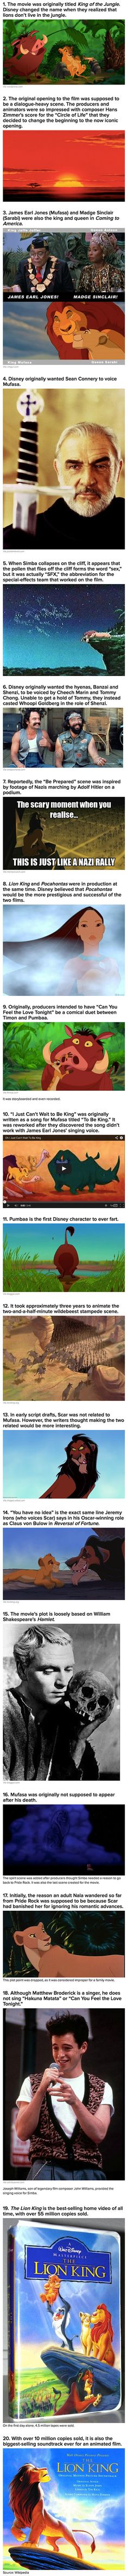 "Here are some interesting things that you may not have known about The Lion King. ""Also, when you look closely, the hyenas turn into German Shepards when marching."" -SB"